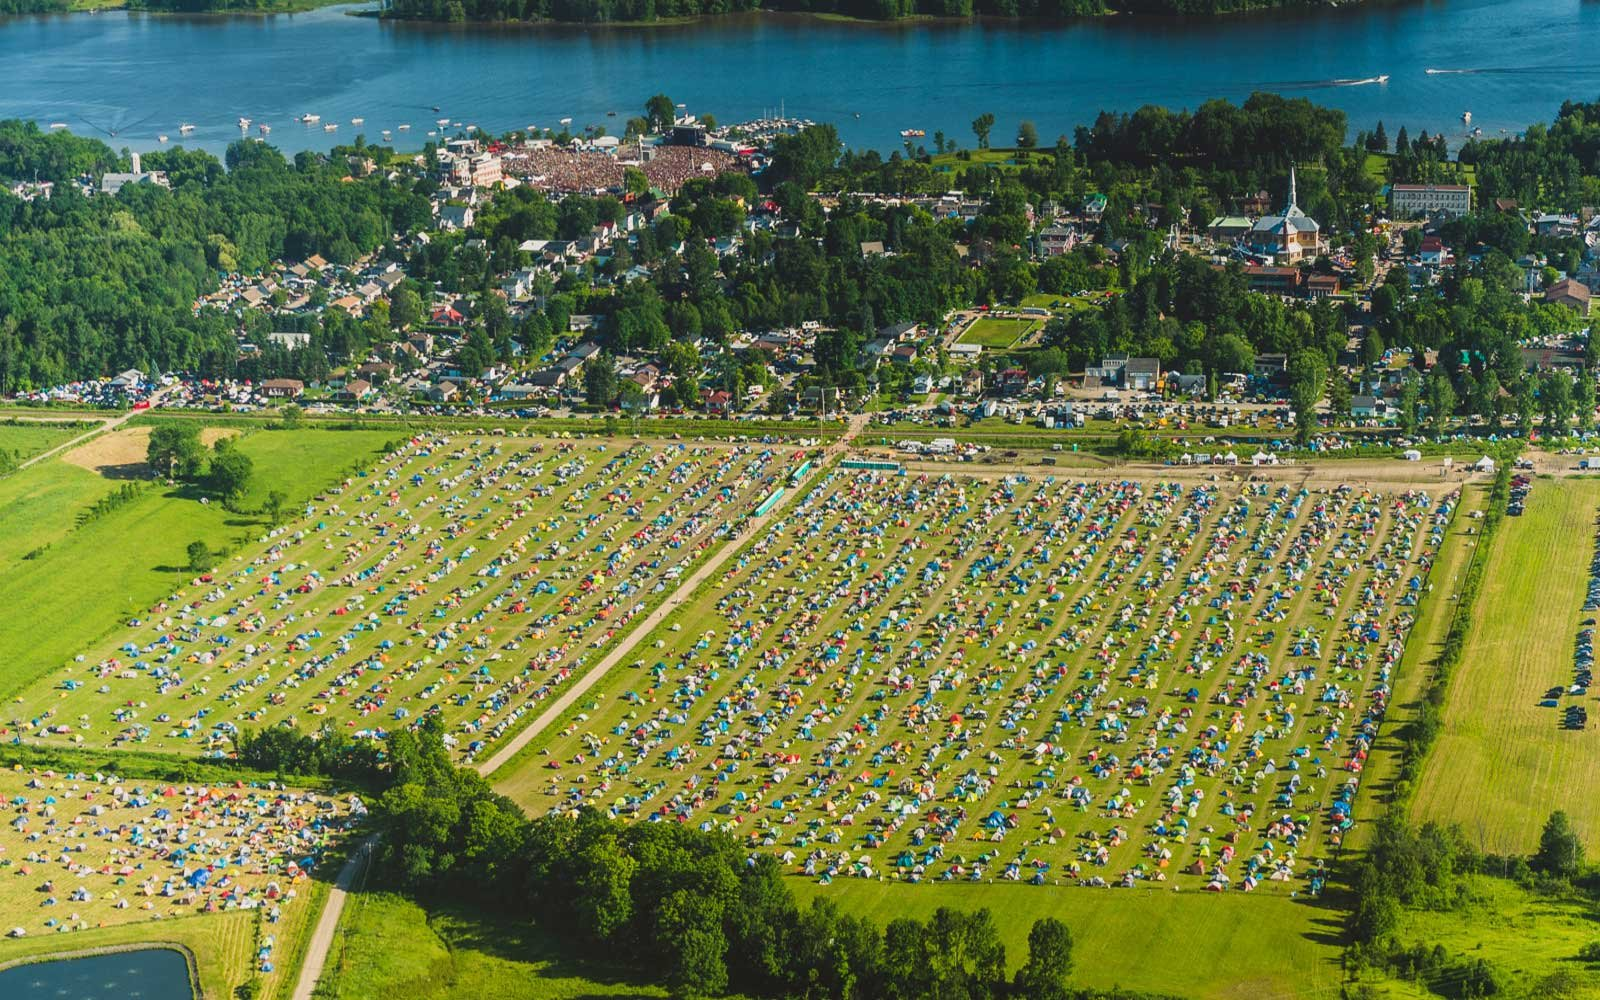 Rock Festival in Quebec